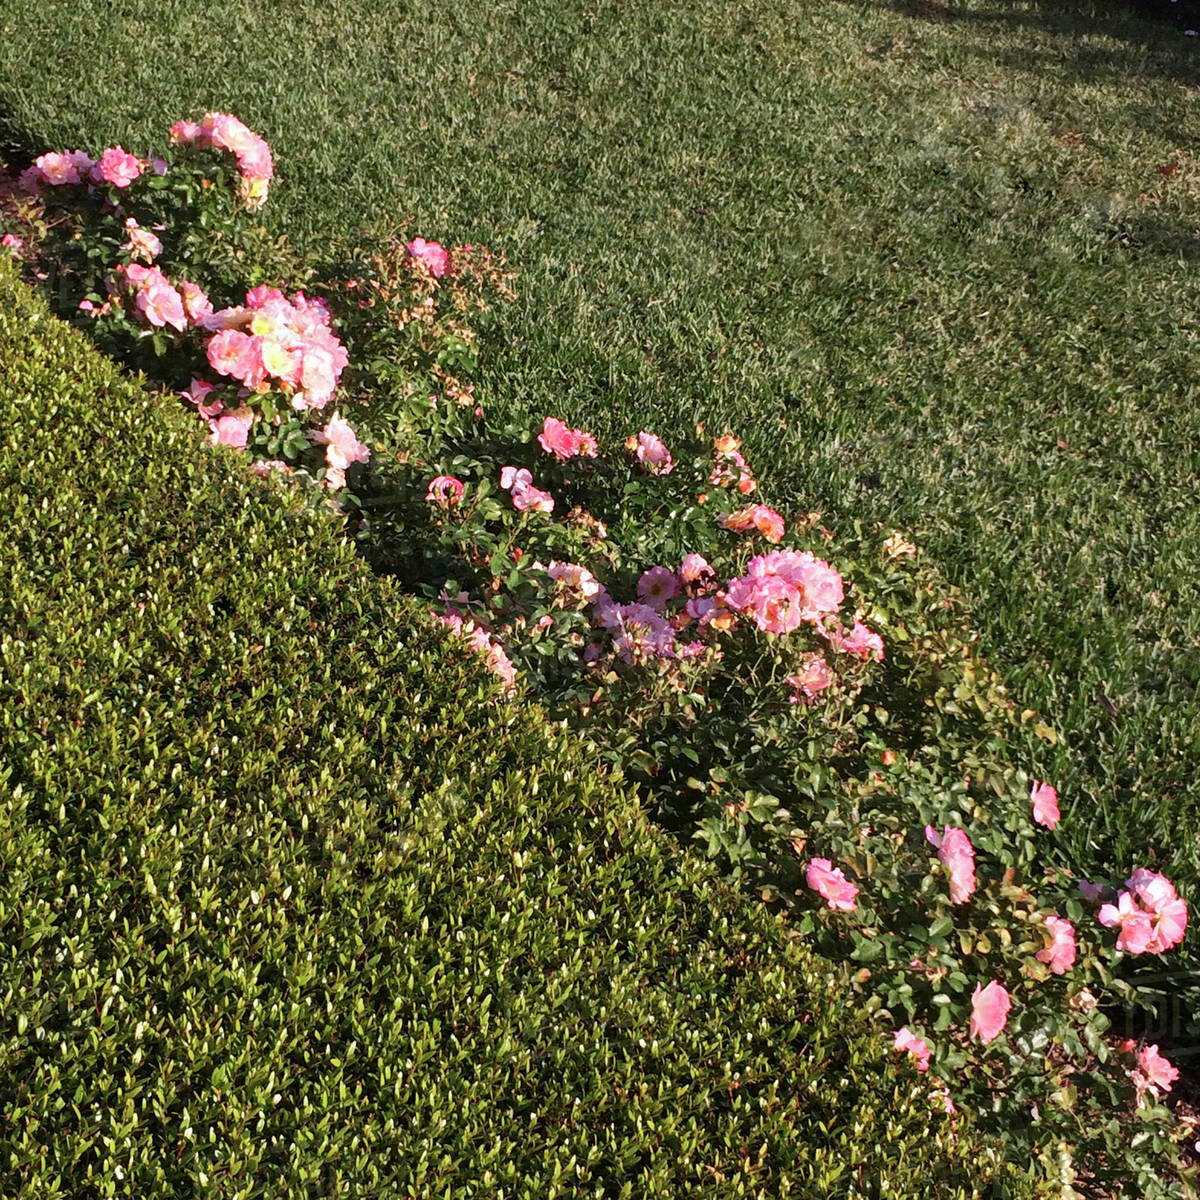 High Angle View Of Pink Flowers Growing On Plants At Grassy Field